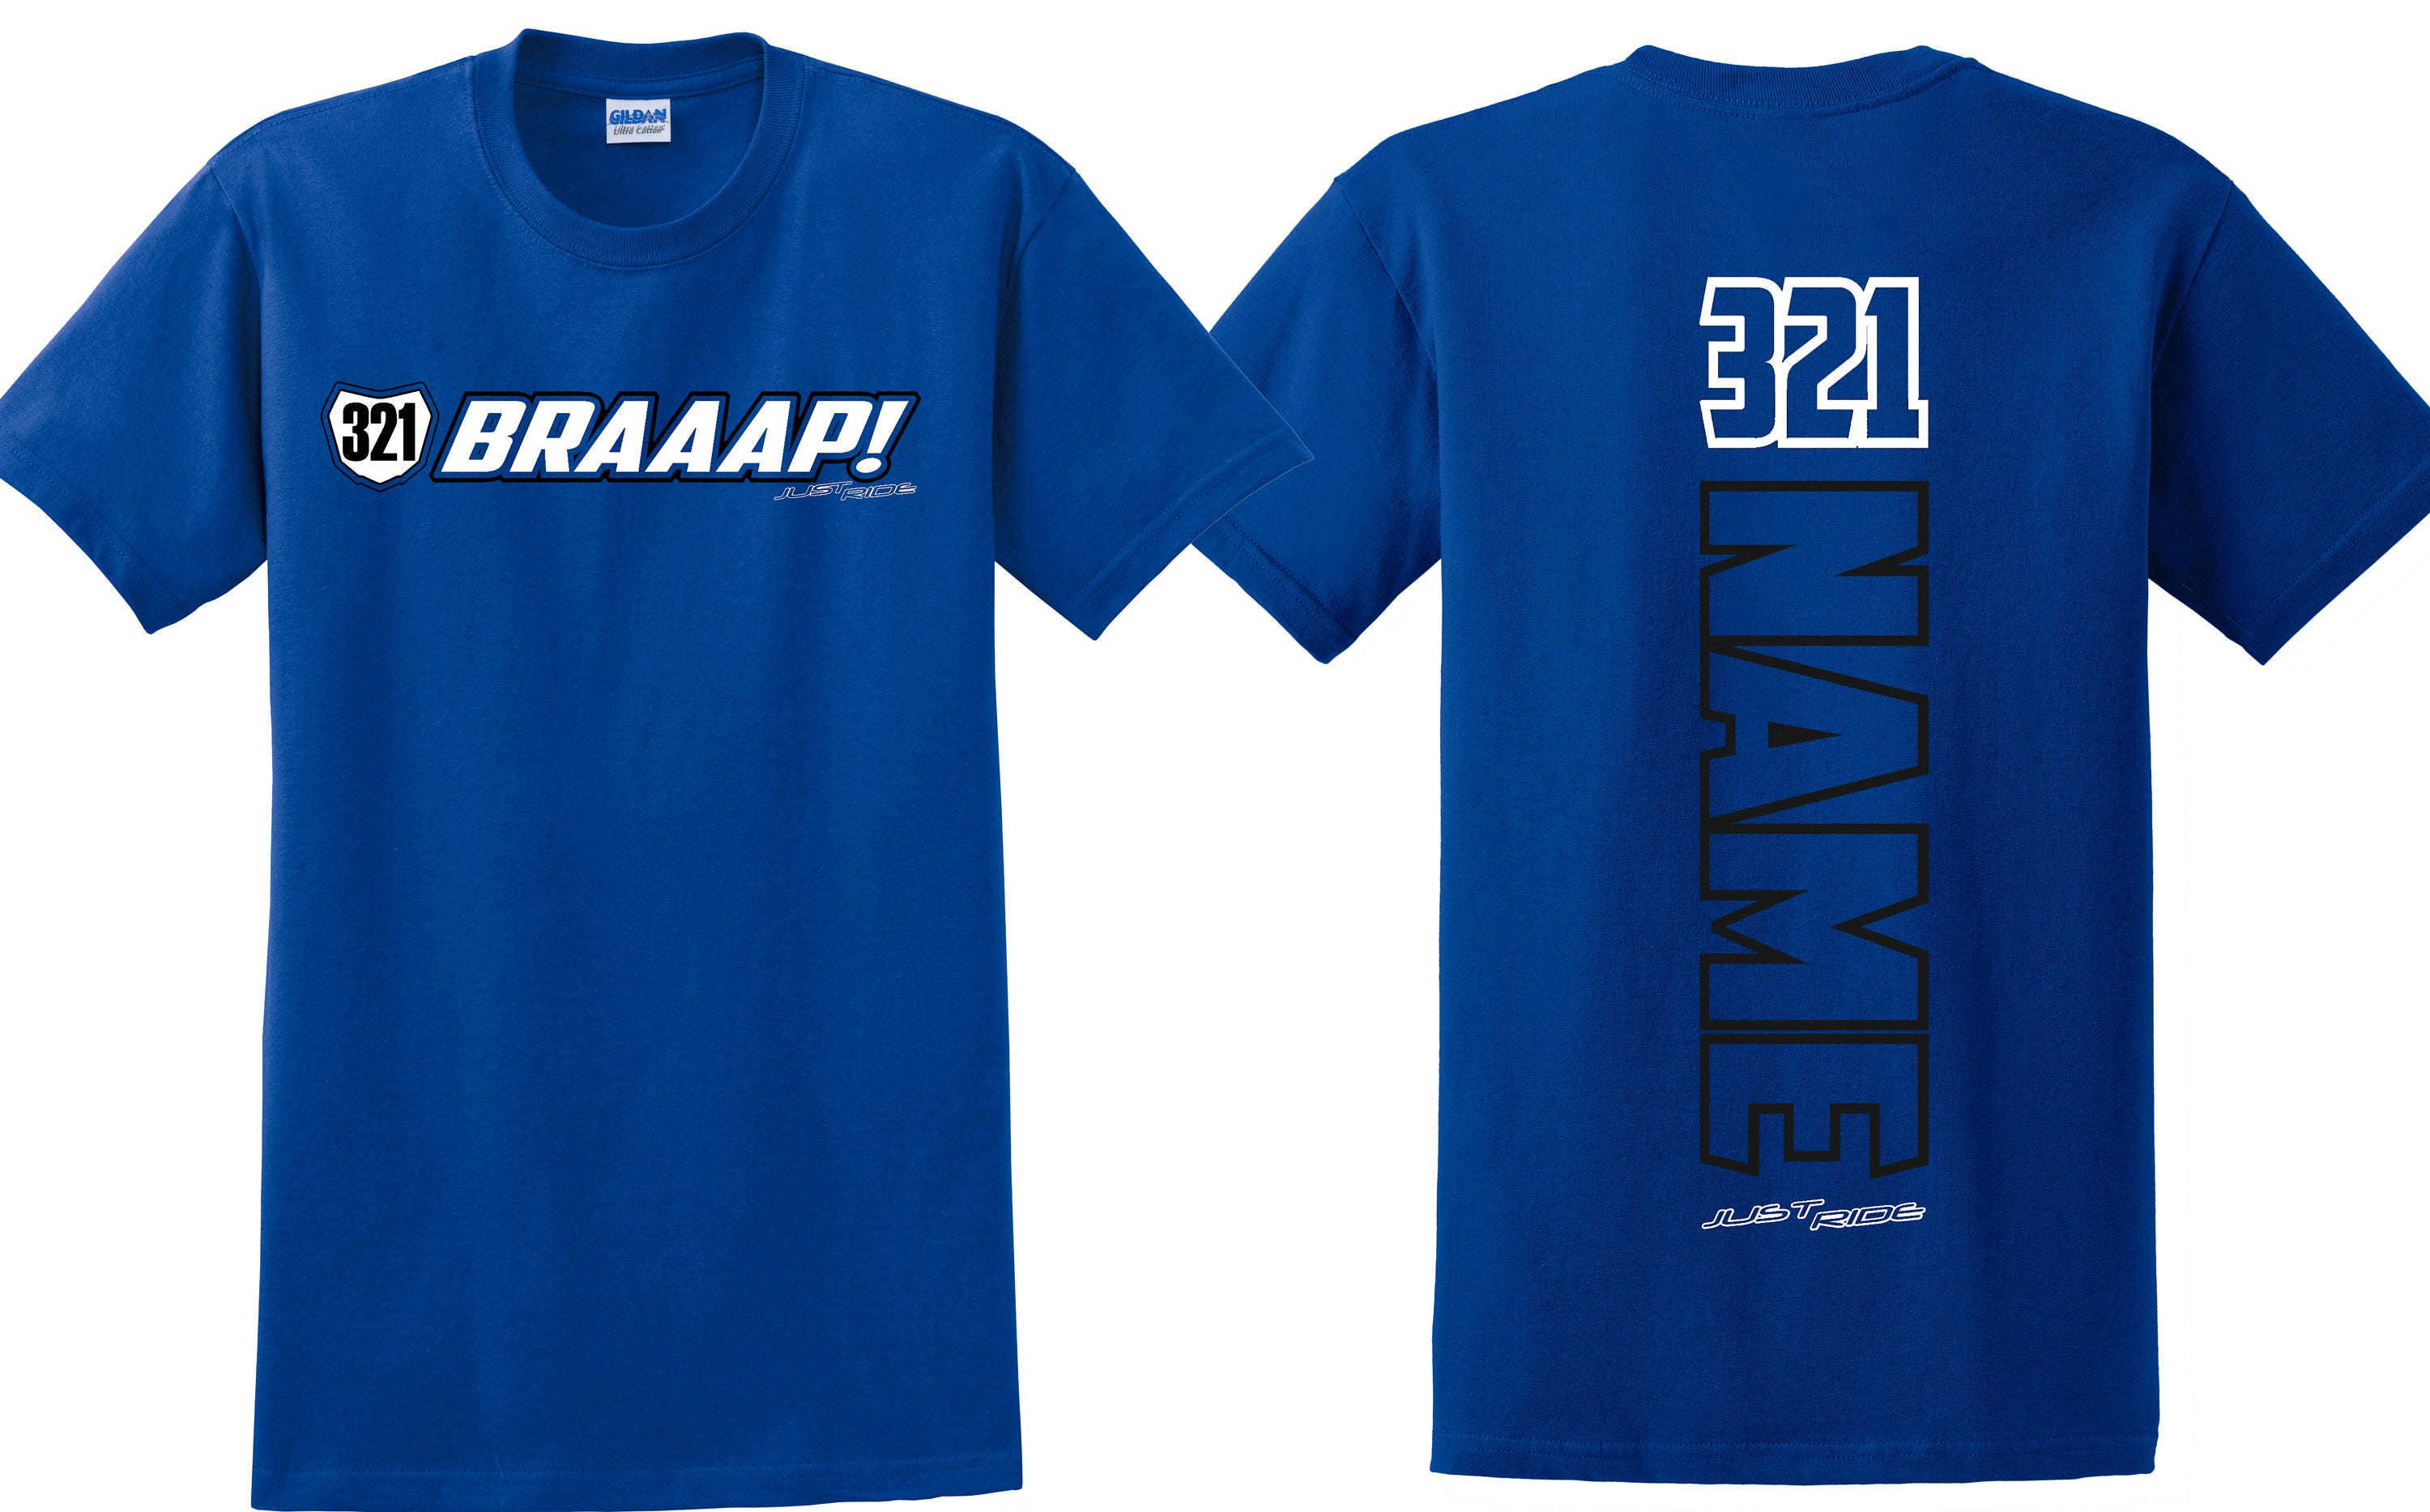 7a6d542a Braaap! Motocross Number Plate T Shirt Just Ride MX Moto Race Braap